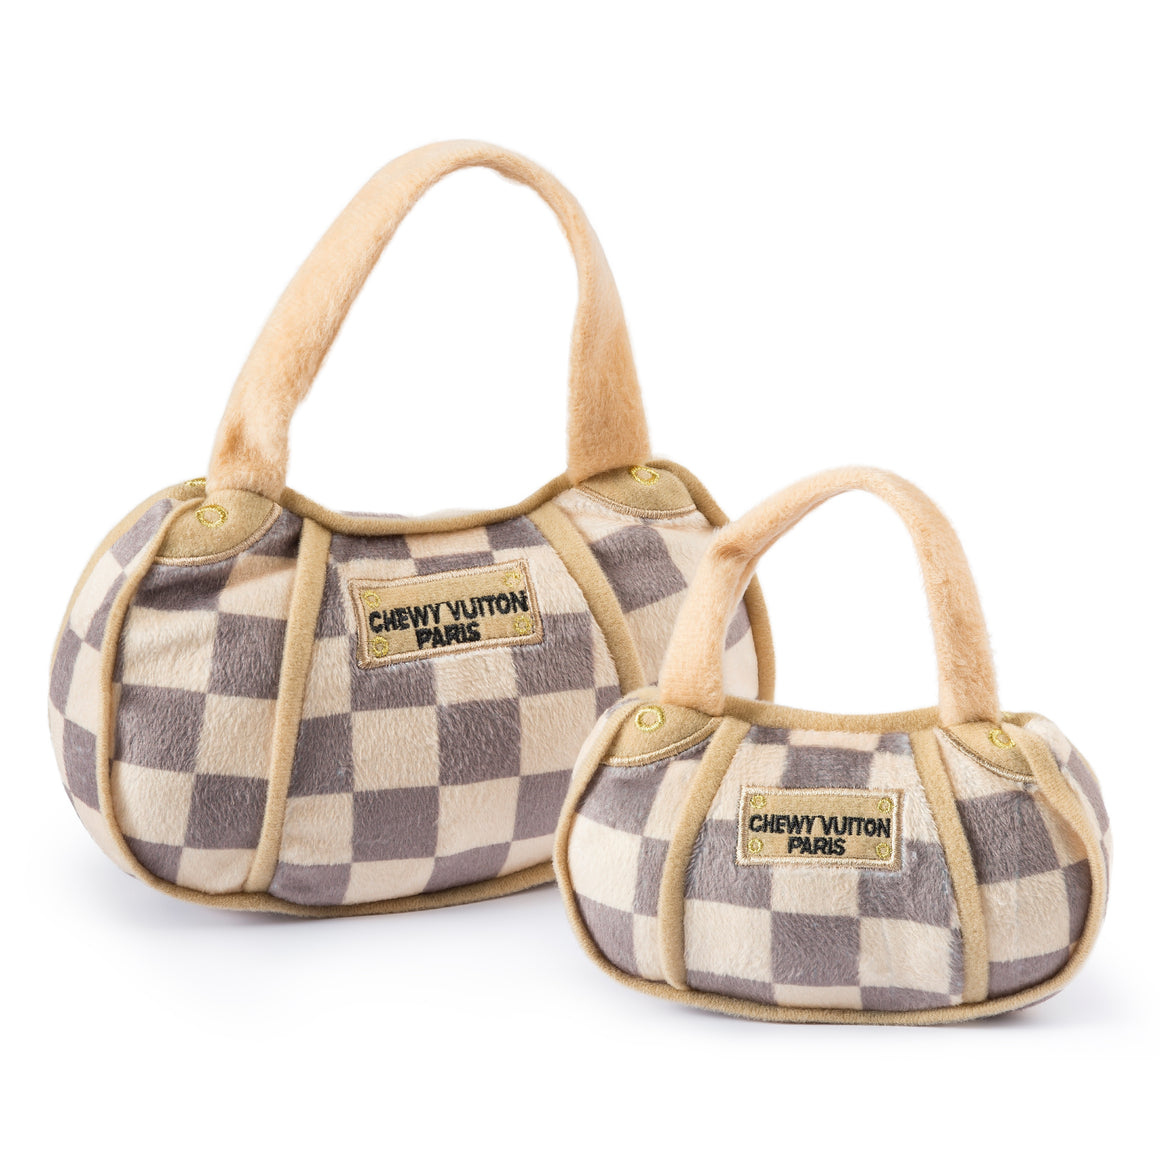 Chewy Vuiton Purse (Checker)